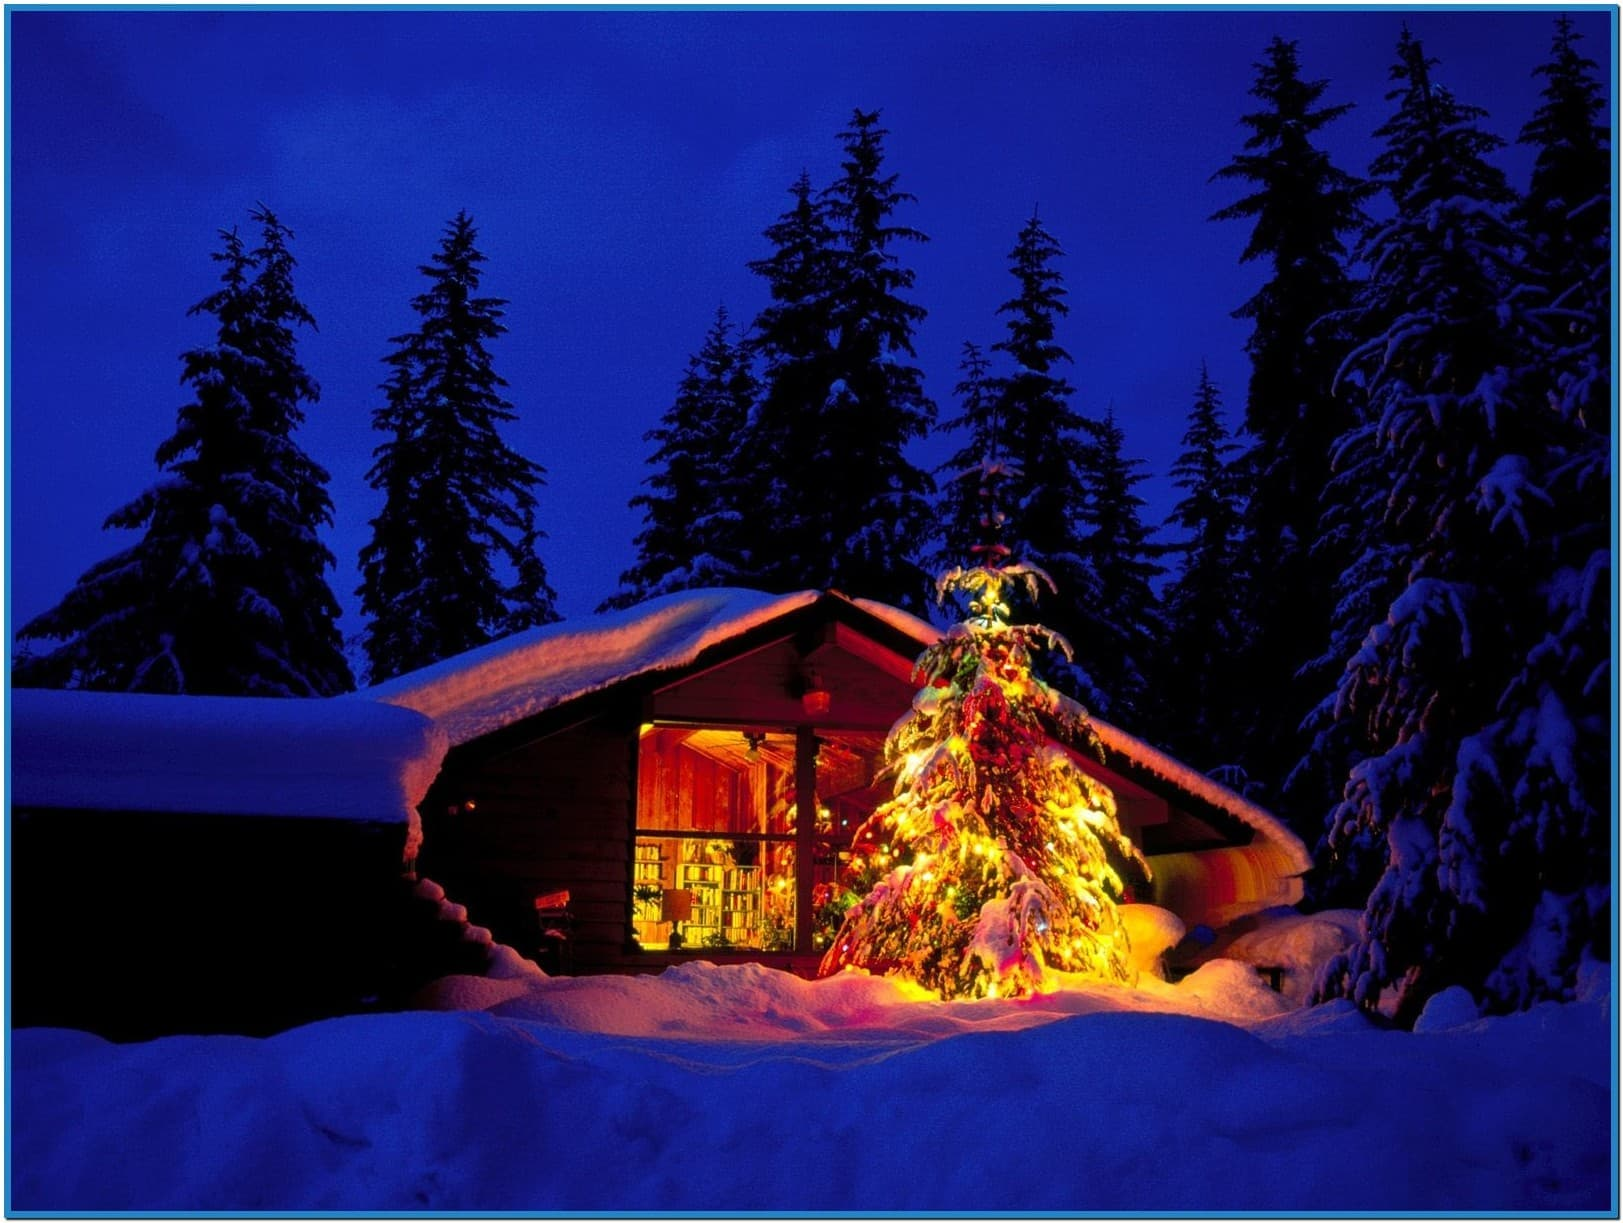 Christmas wallpapers and screensavers with music - Download free